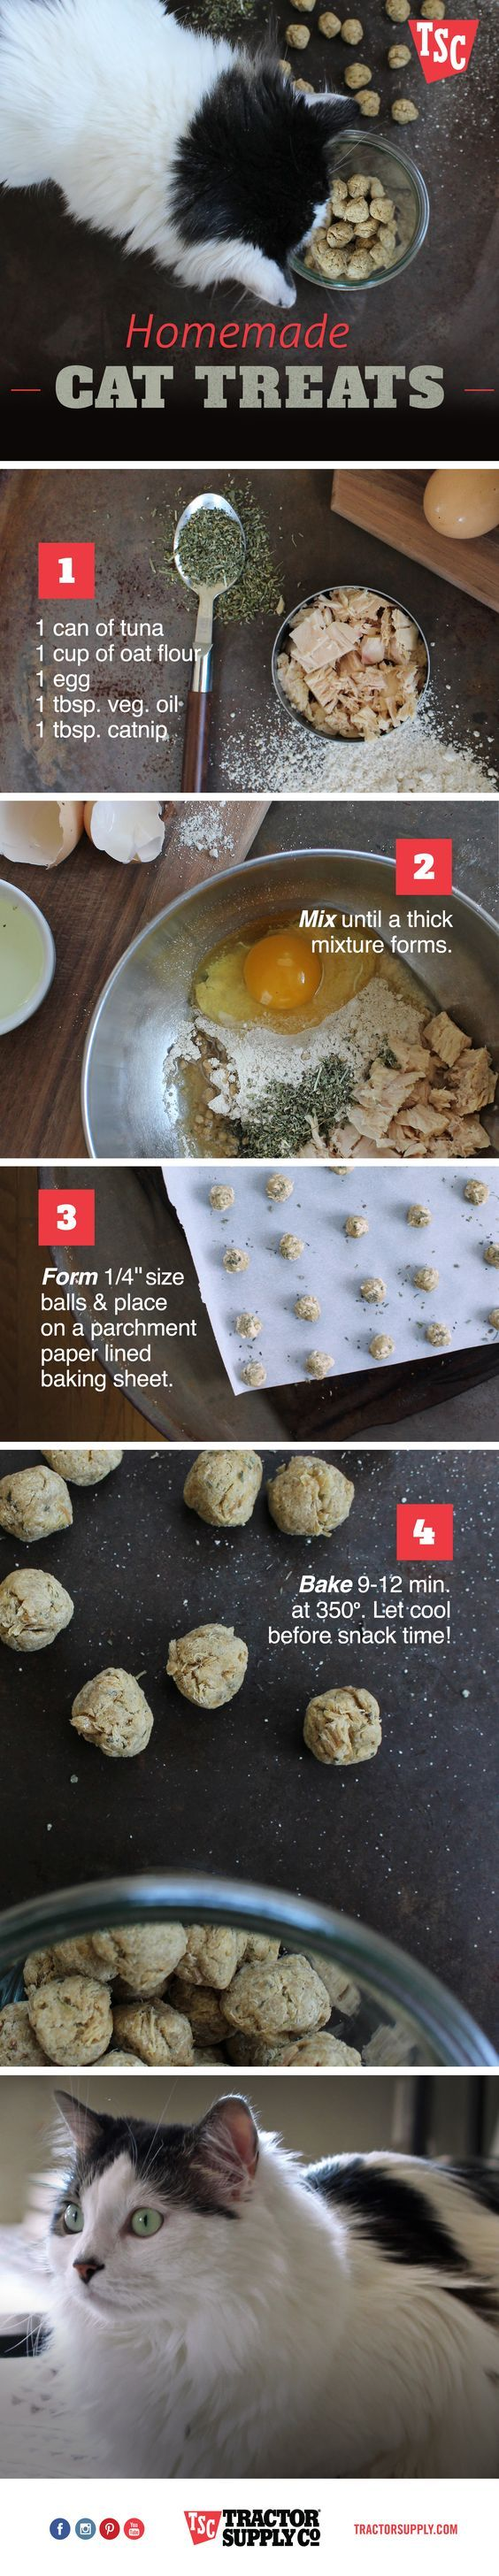 These easy-to-make, homemade cat treats with tuna and catnip will have Kitty jumping for joy.